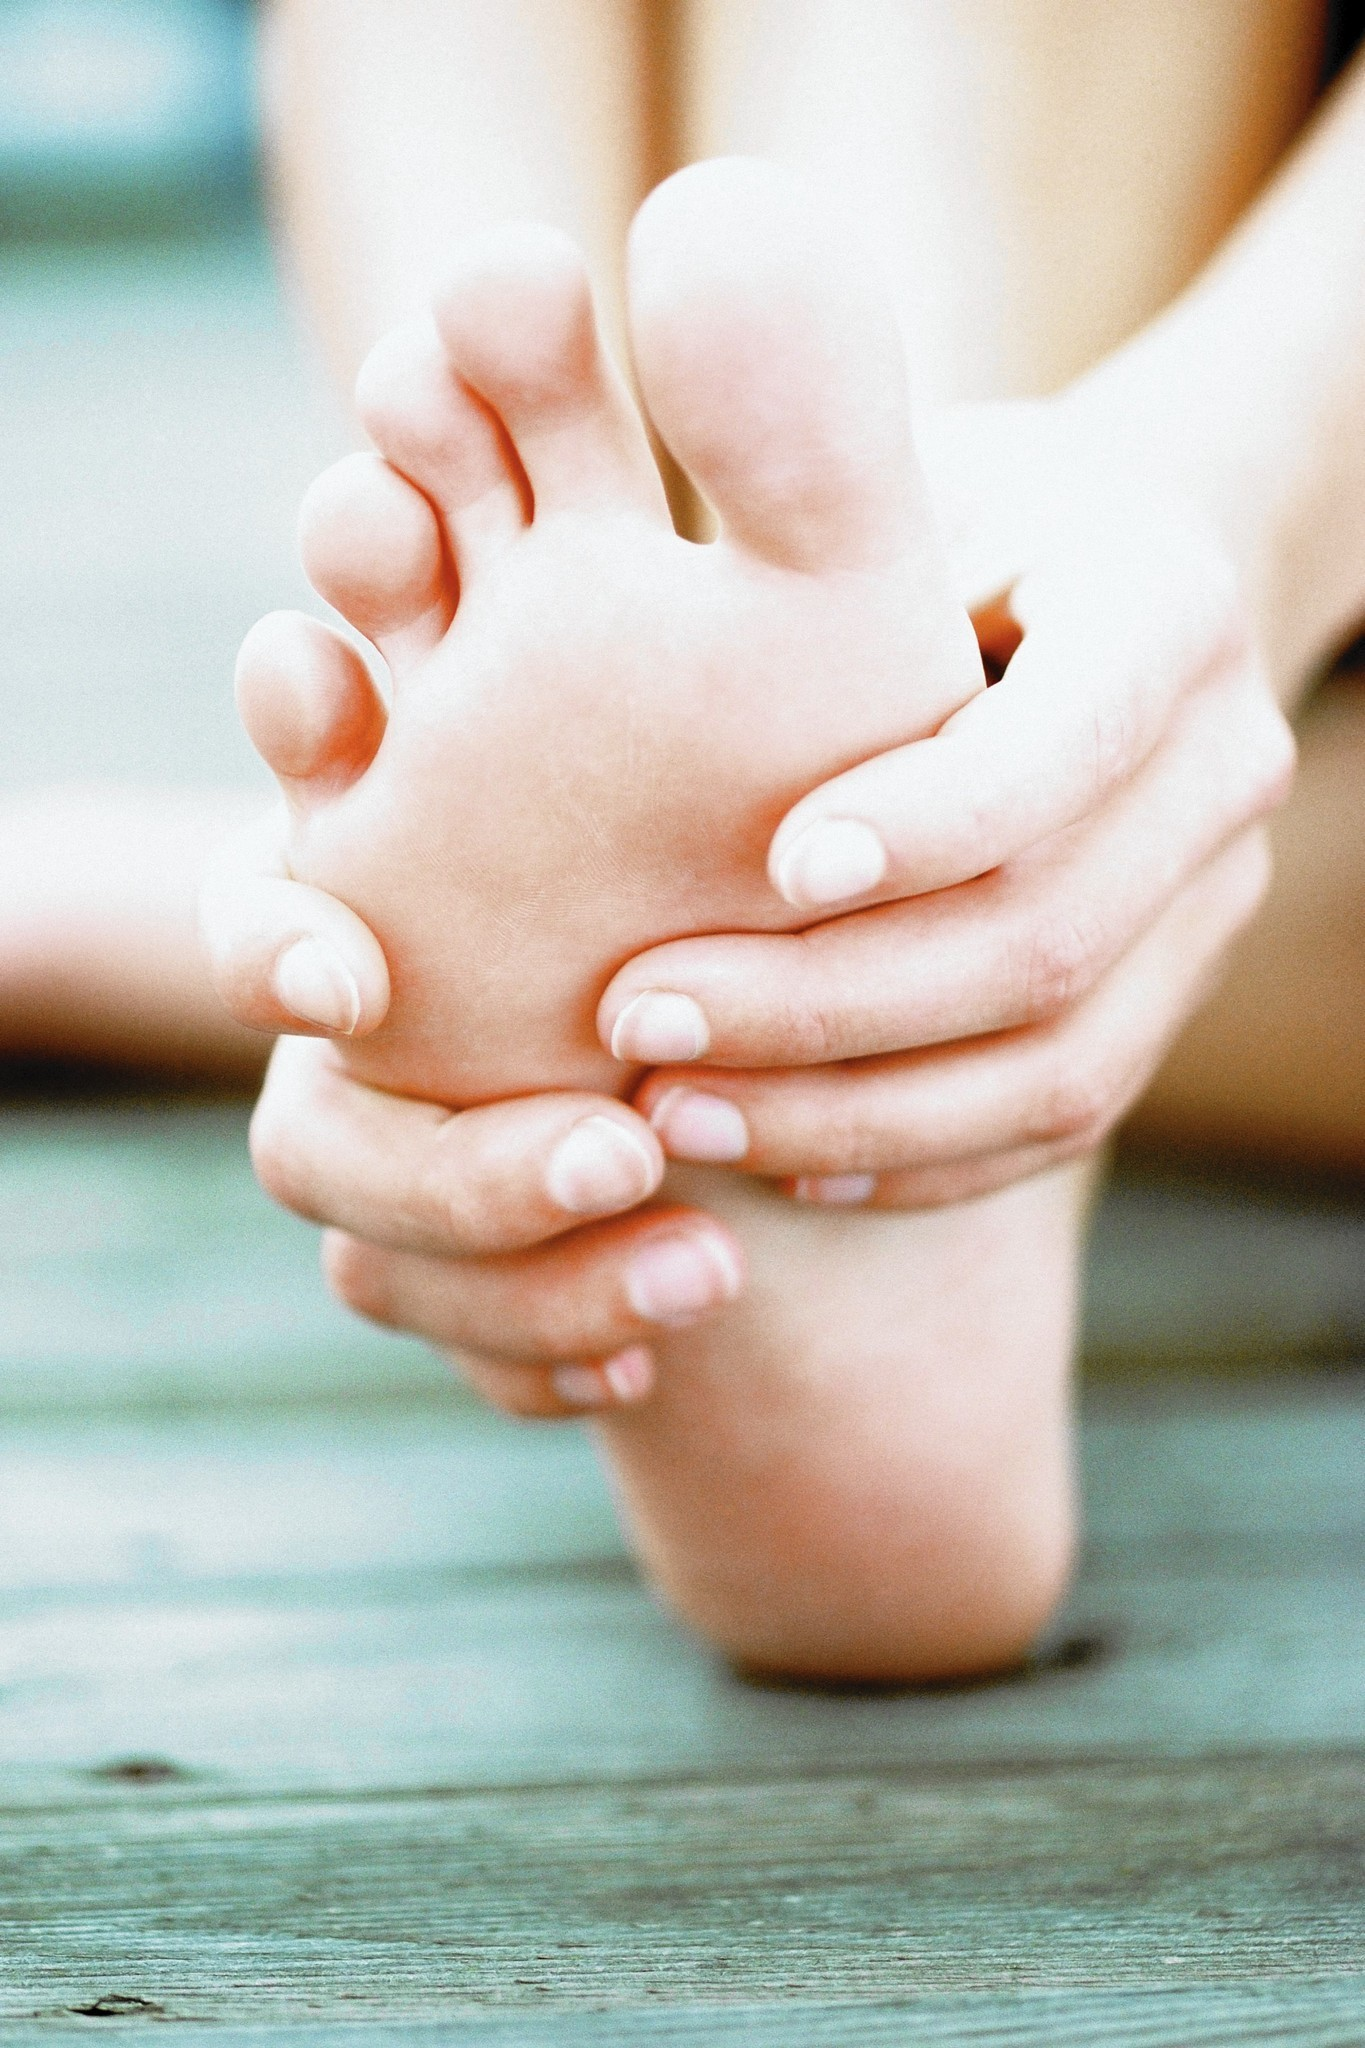 How To Soothe Sore Feet